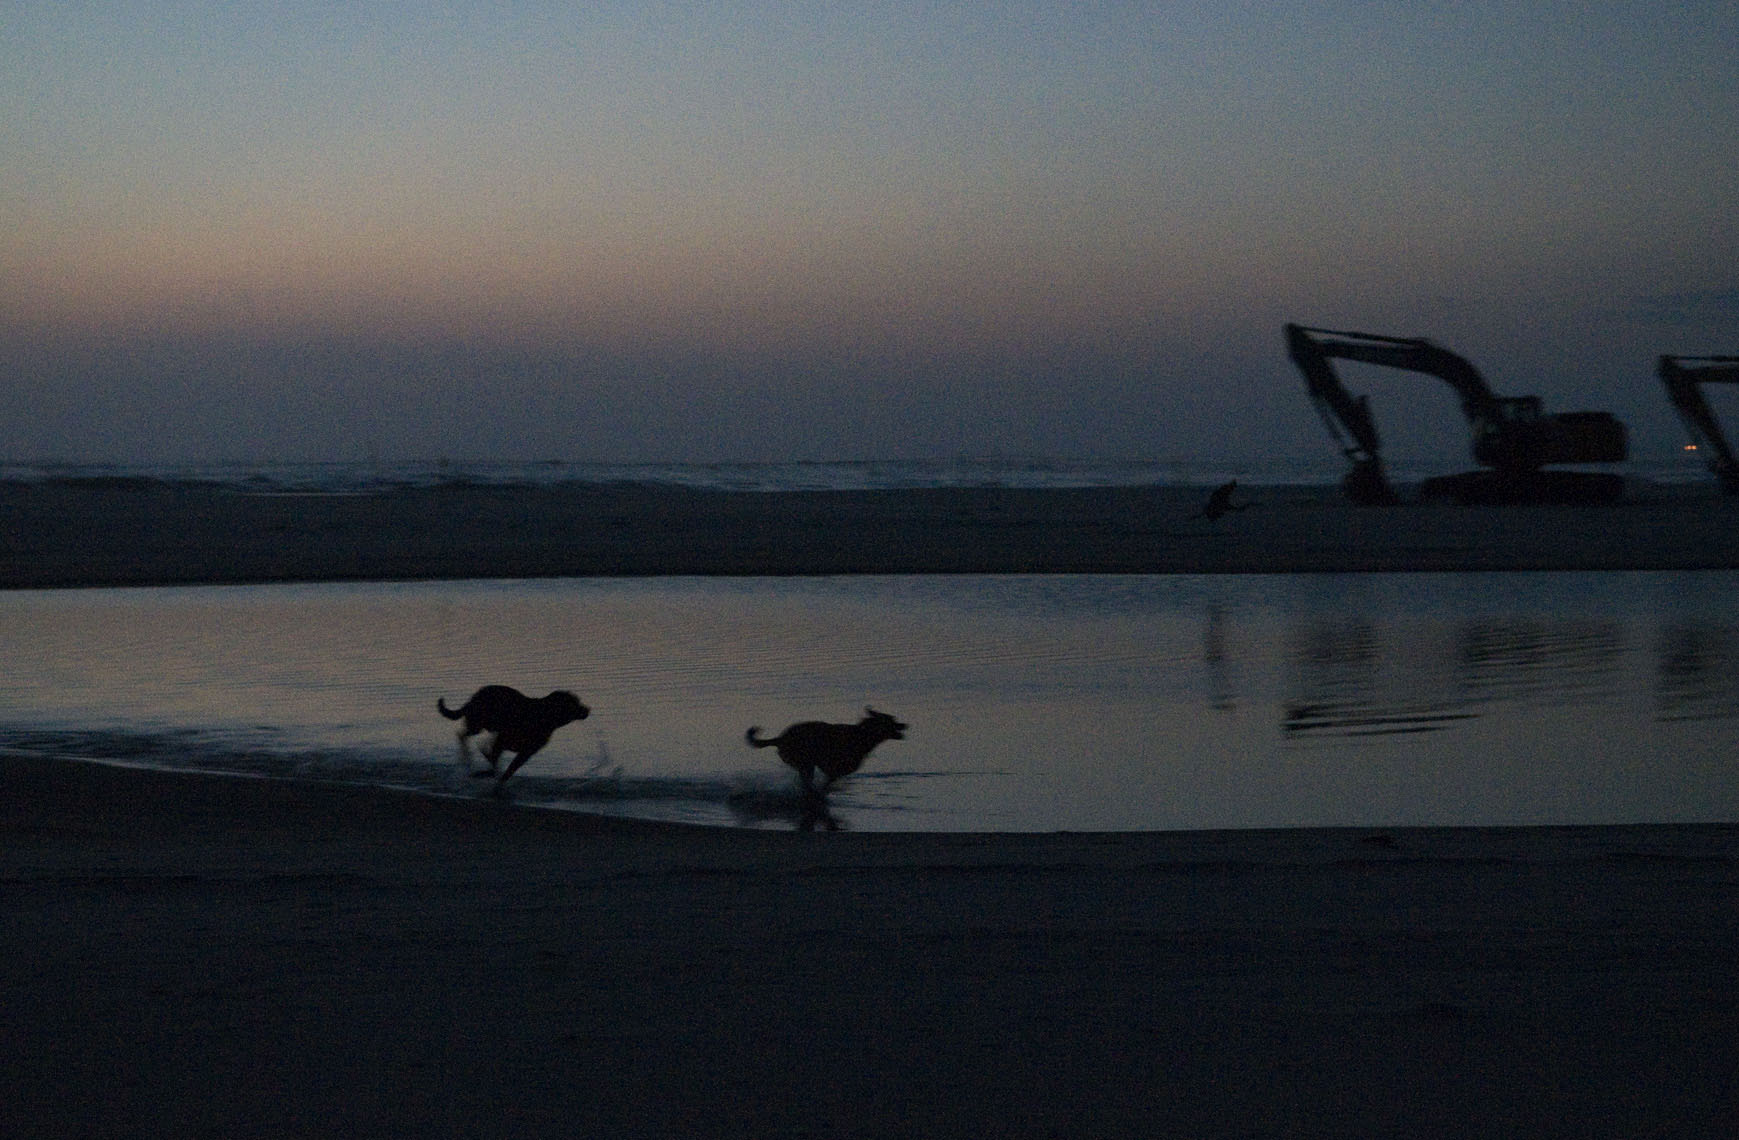 silhouettes-of-happy-dogs-running-on-dauphin-island-alabama